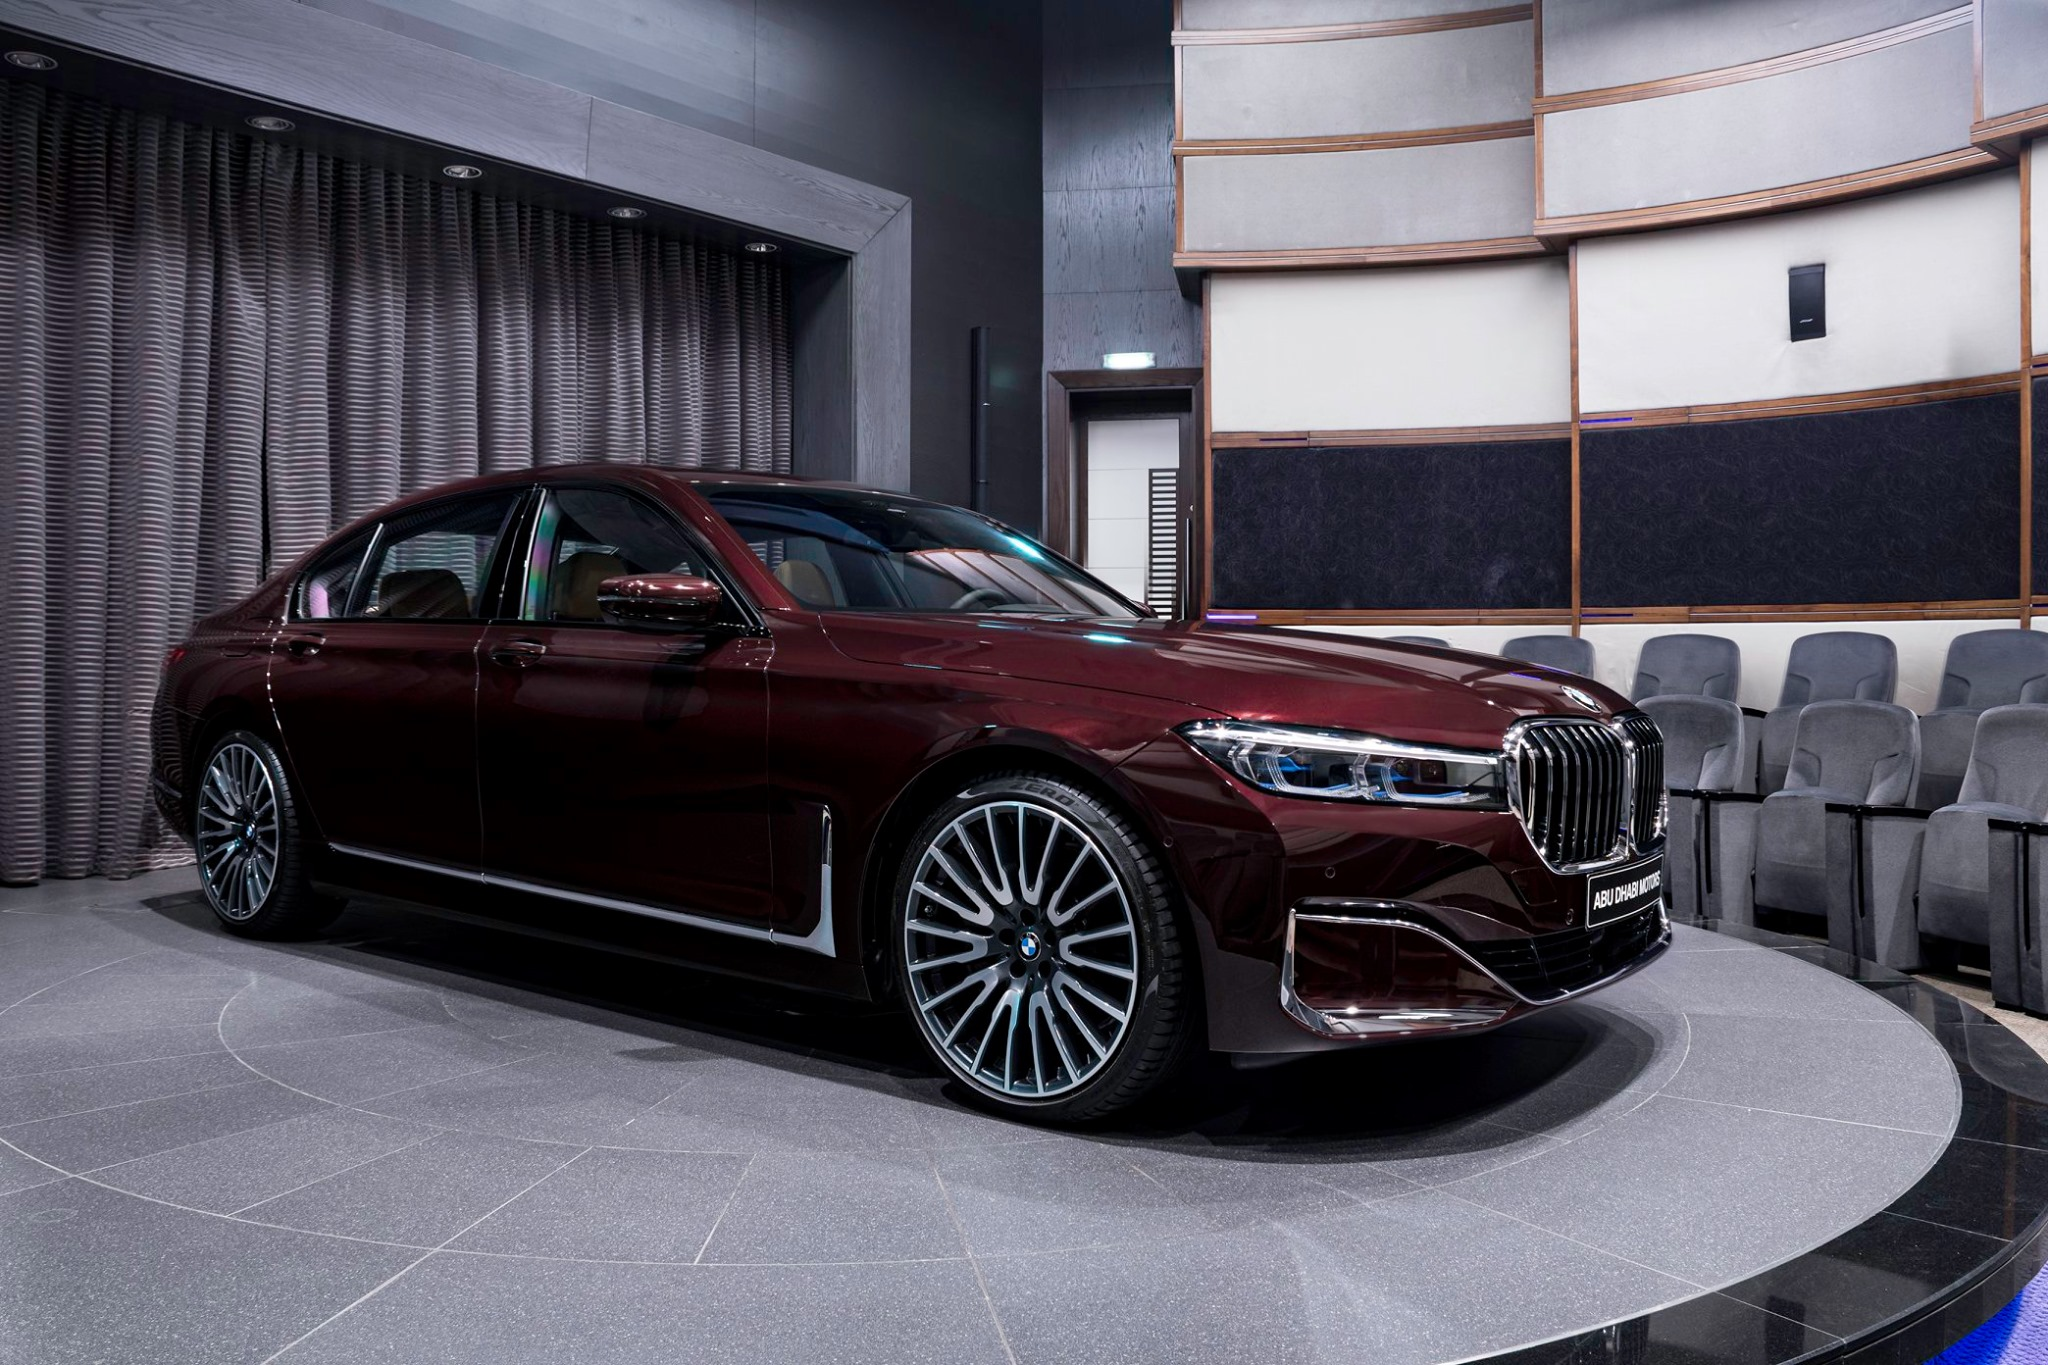 2020_BMW_750Li_Royal_Burgundy_Red_0002